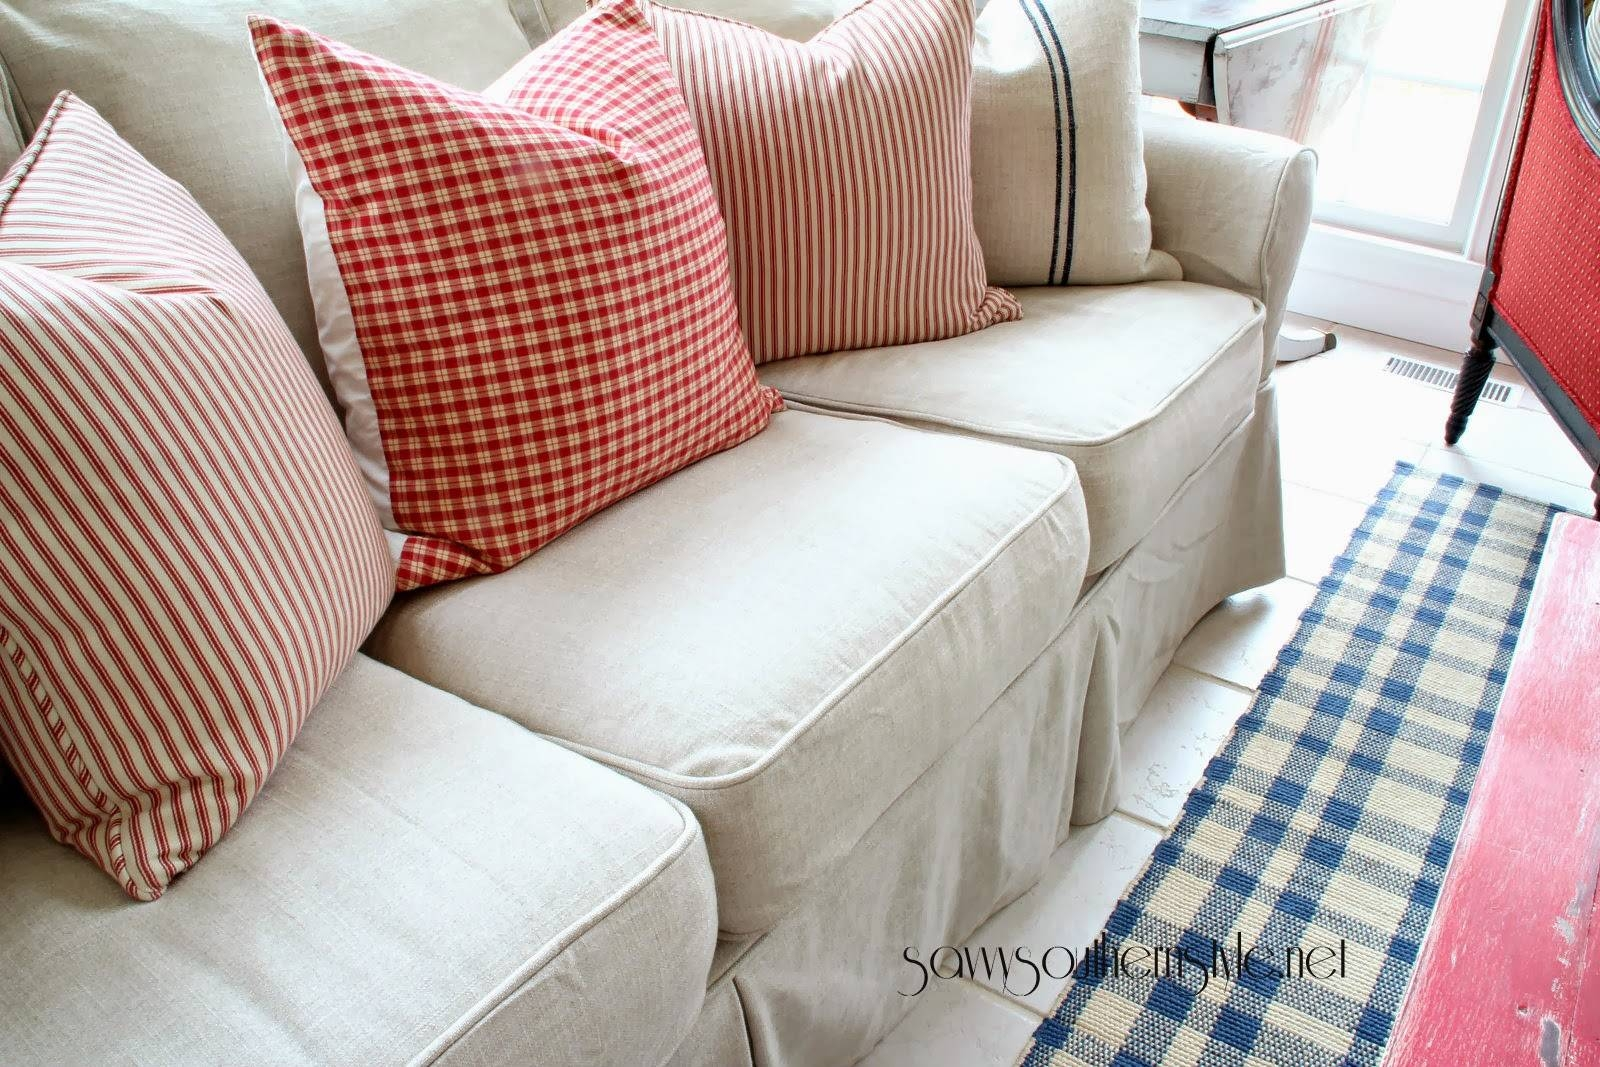 Custom Slipcovers And Couch Cover For Any Sofa Online For Slipcovers For Sofas And Chairs (View 9 of 30)